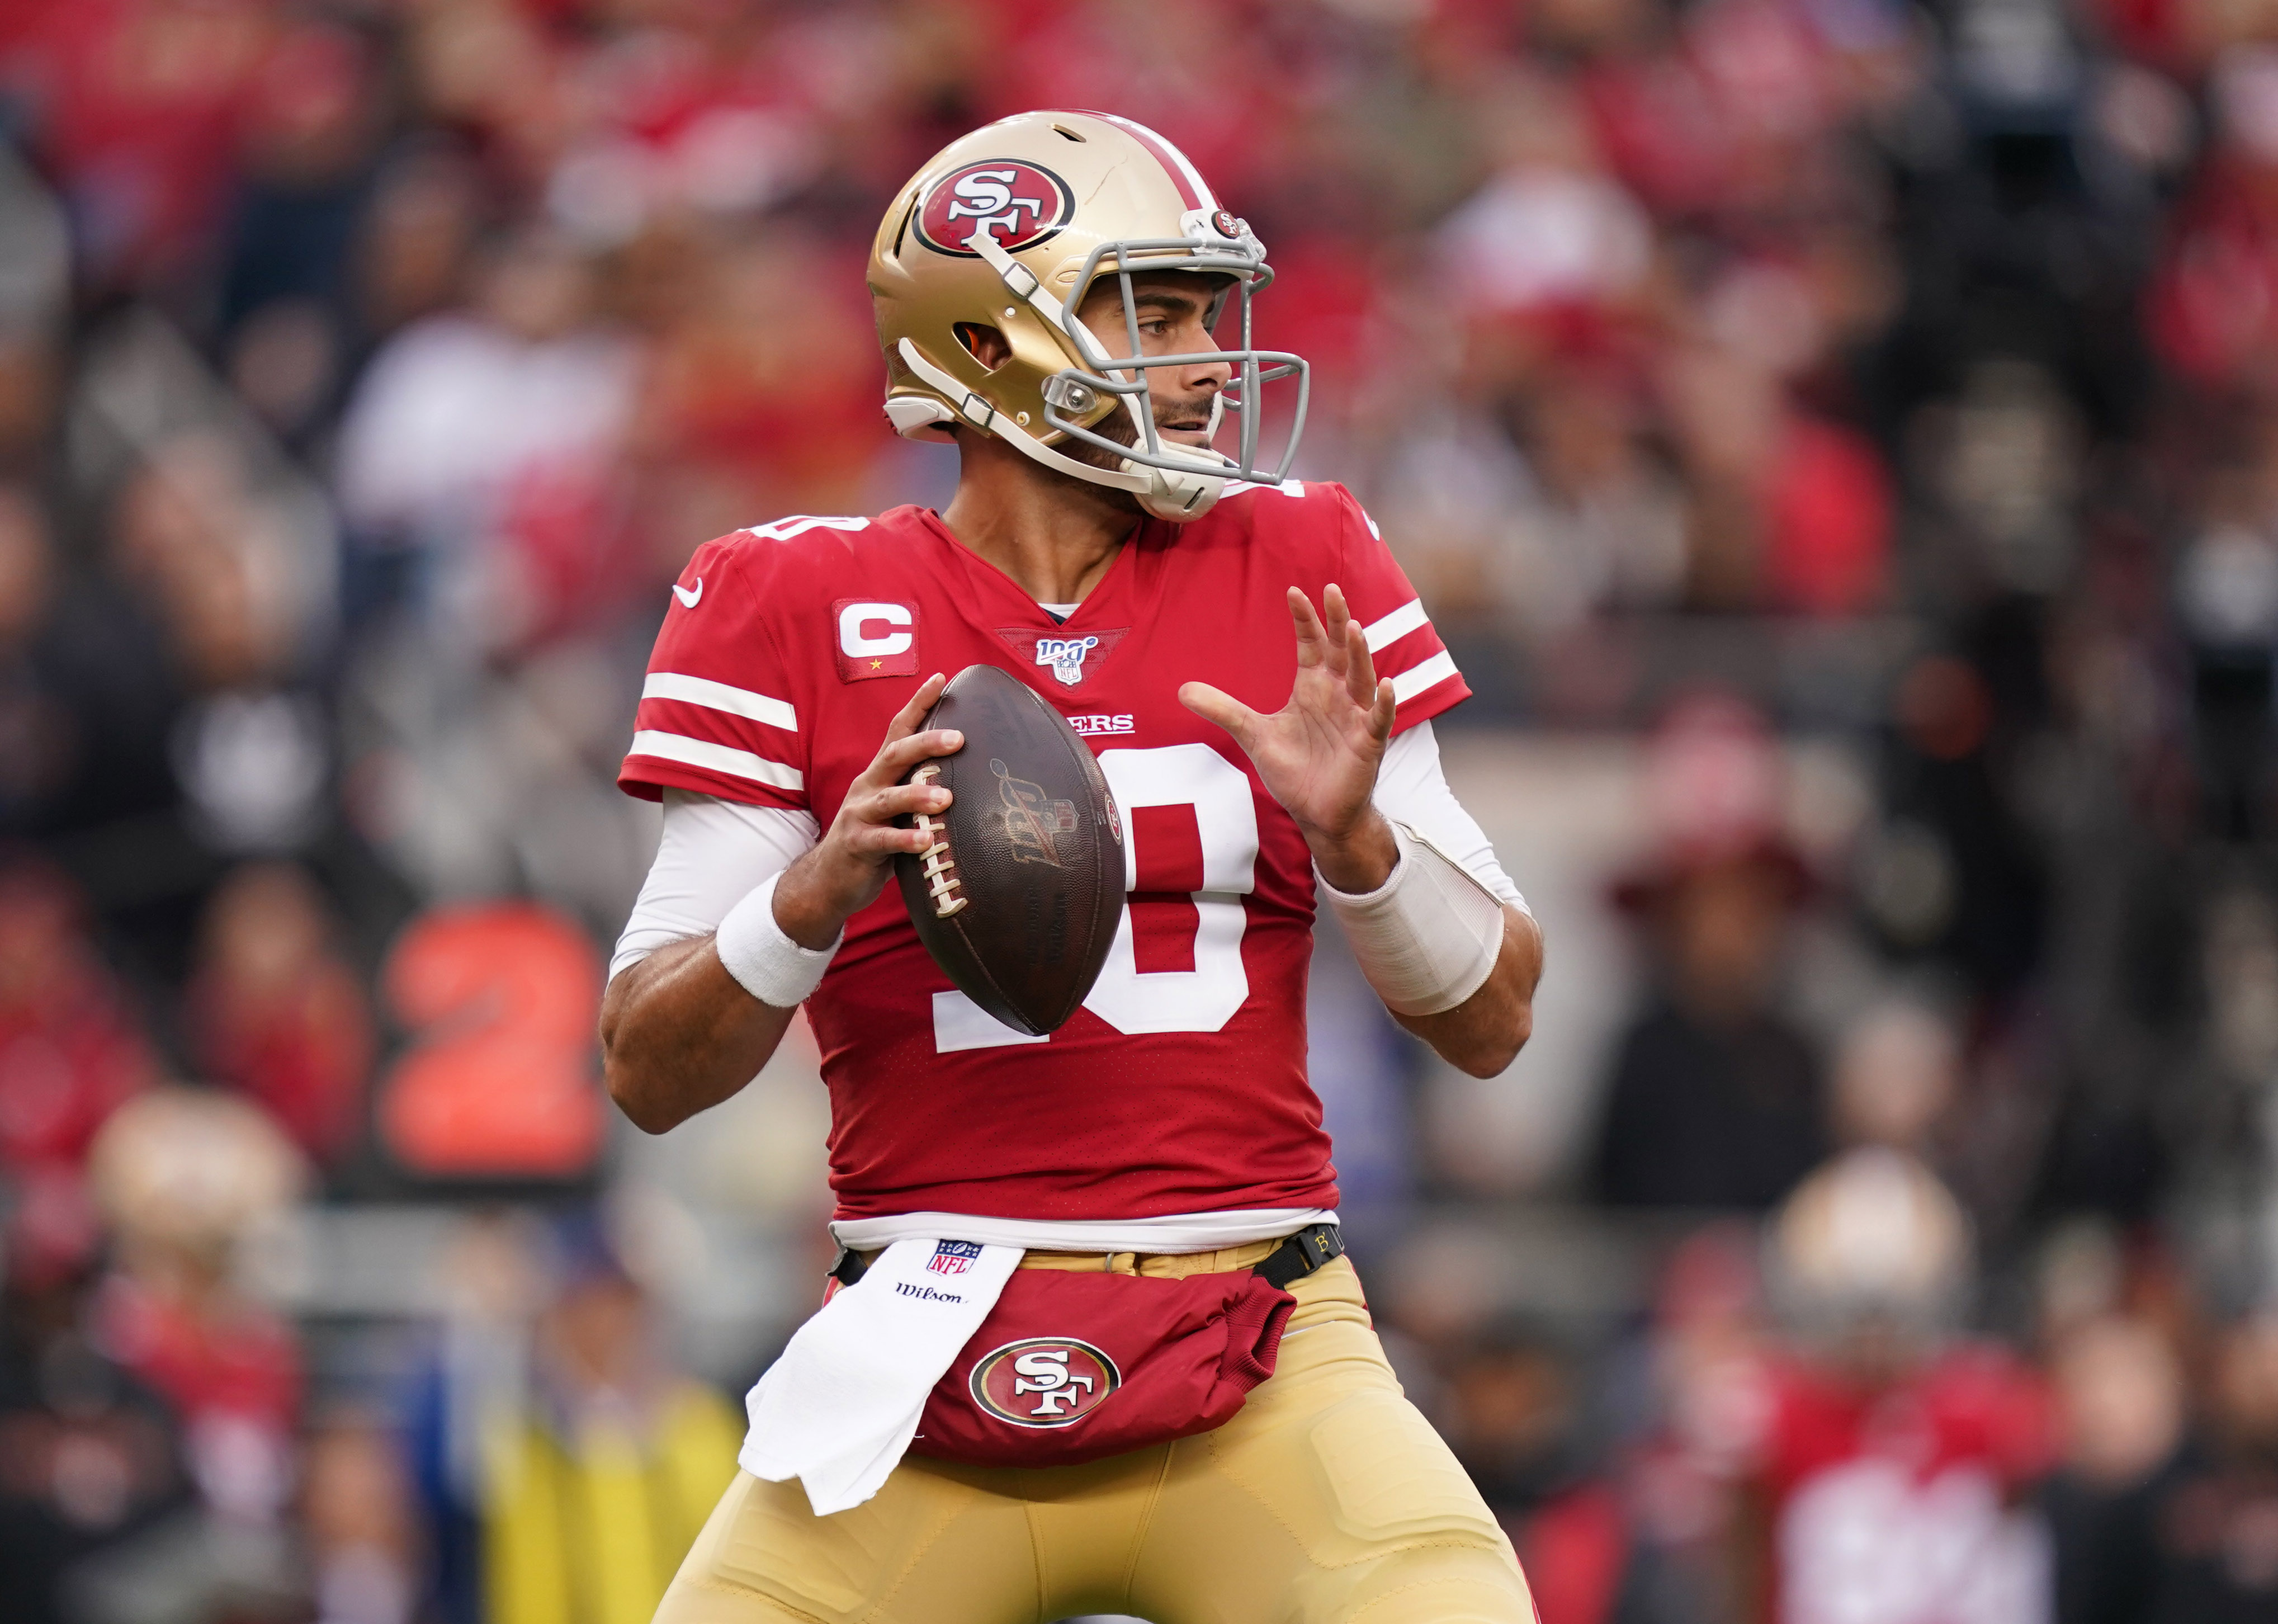 Why Jimmy Garoppolo Will be Vastly Improved in 2020